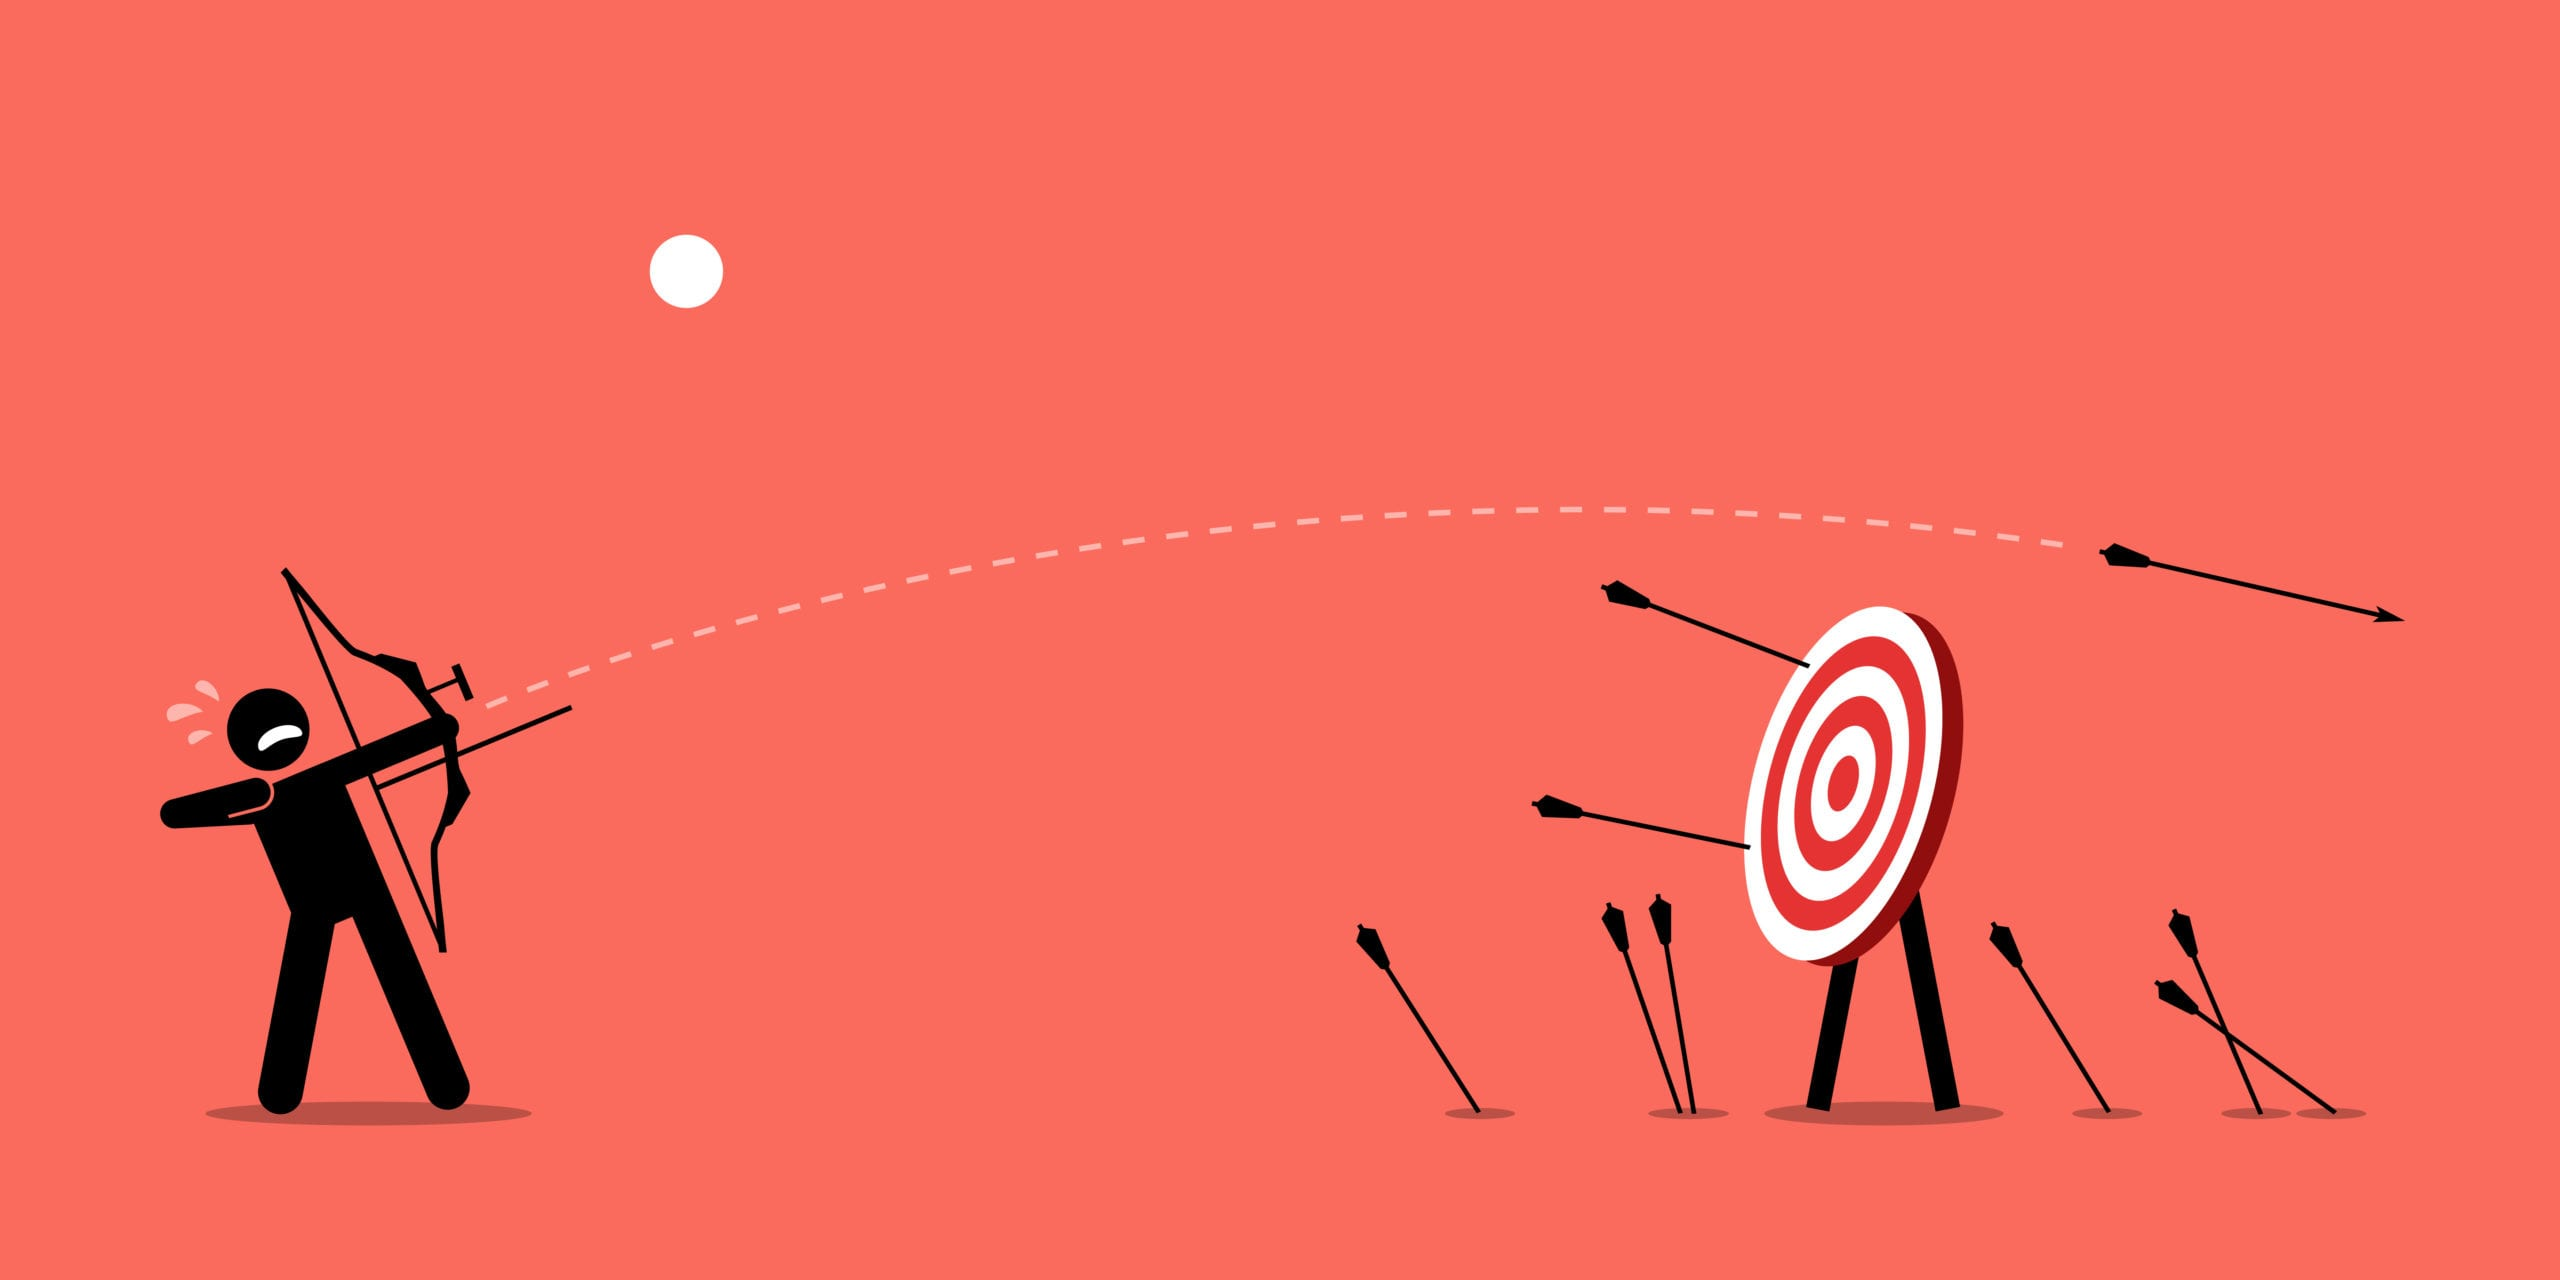 Illustration of a stick figure doing archery over a solid background missing the target.